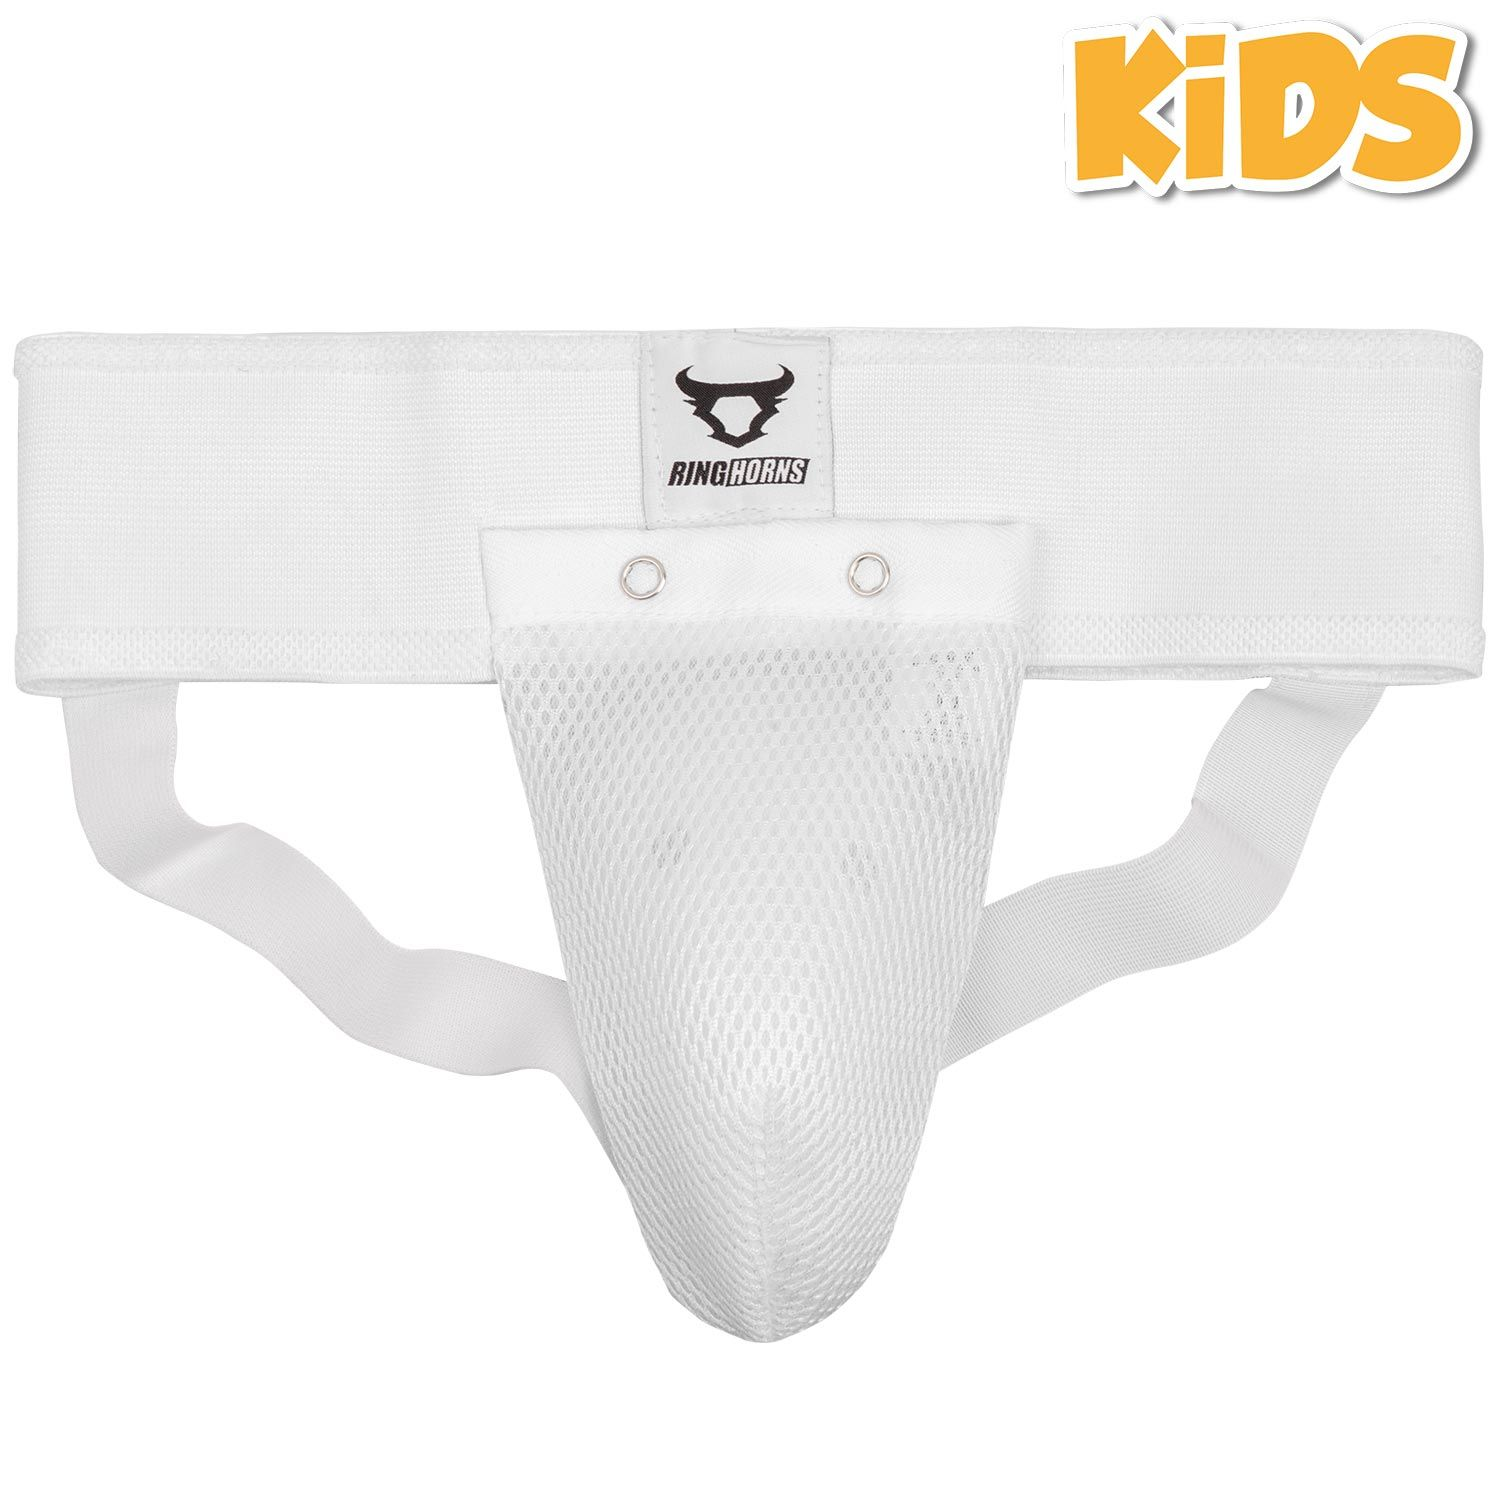 Ringhorns Charger Kids Groin Guard & Support - White